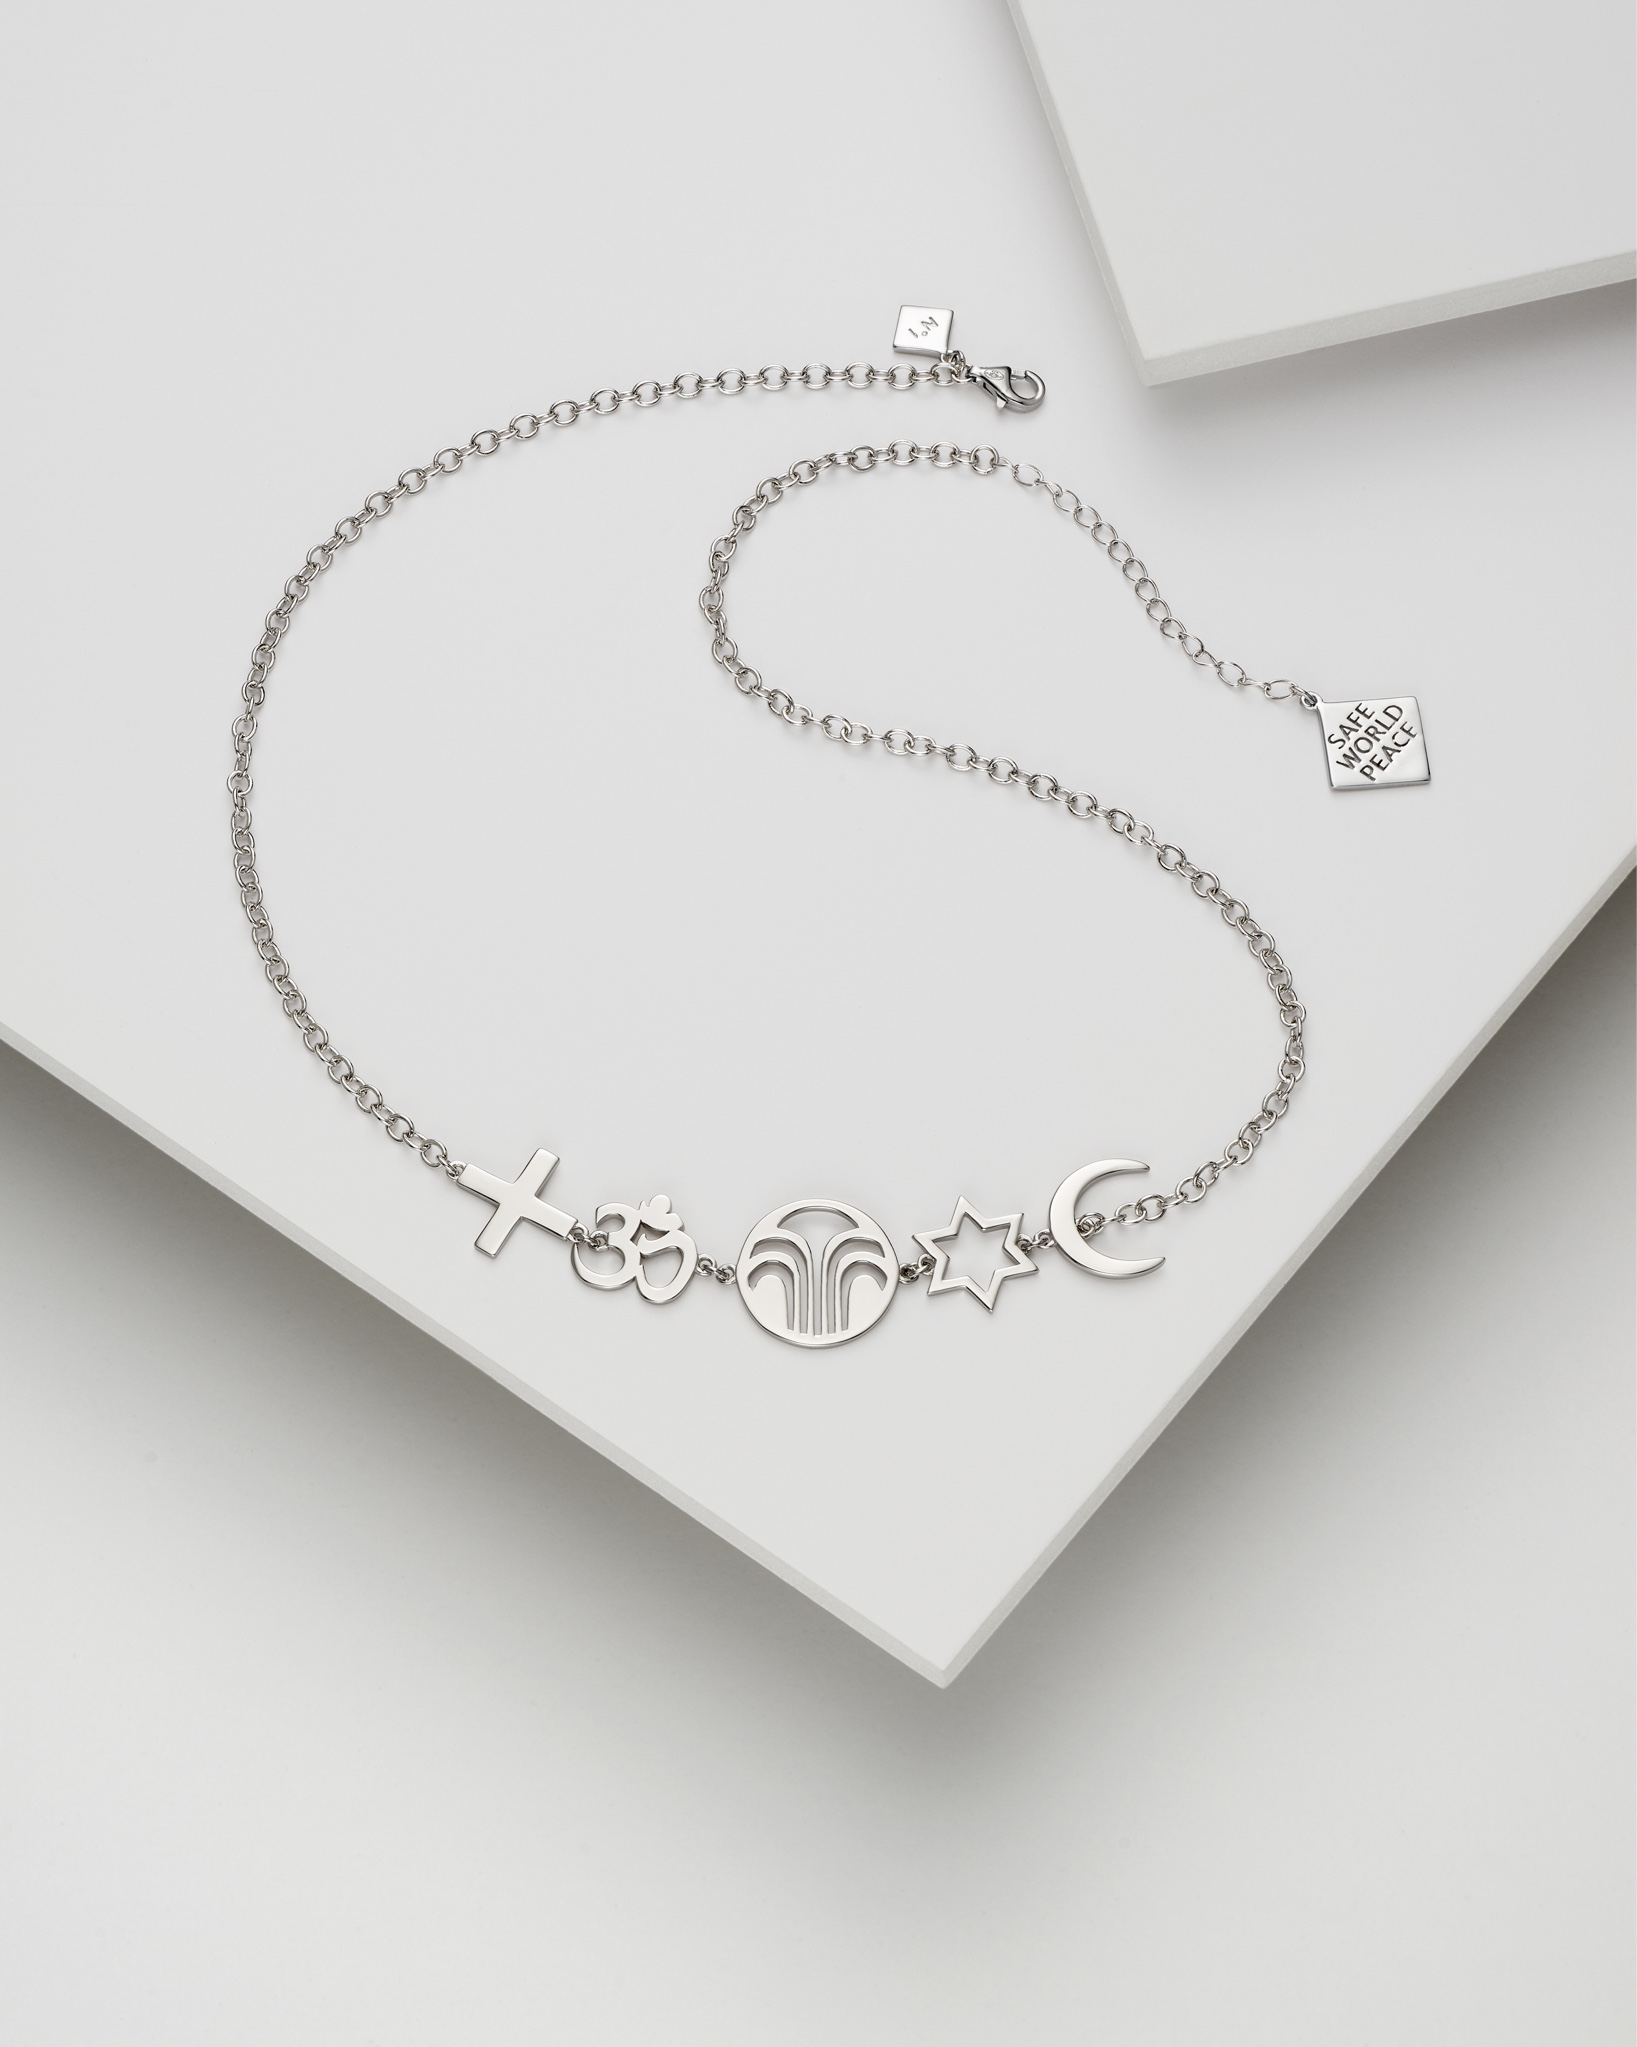 Safe World Peace, Force for Good collection - Necklace Silver